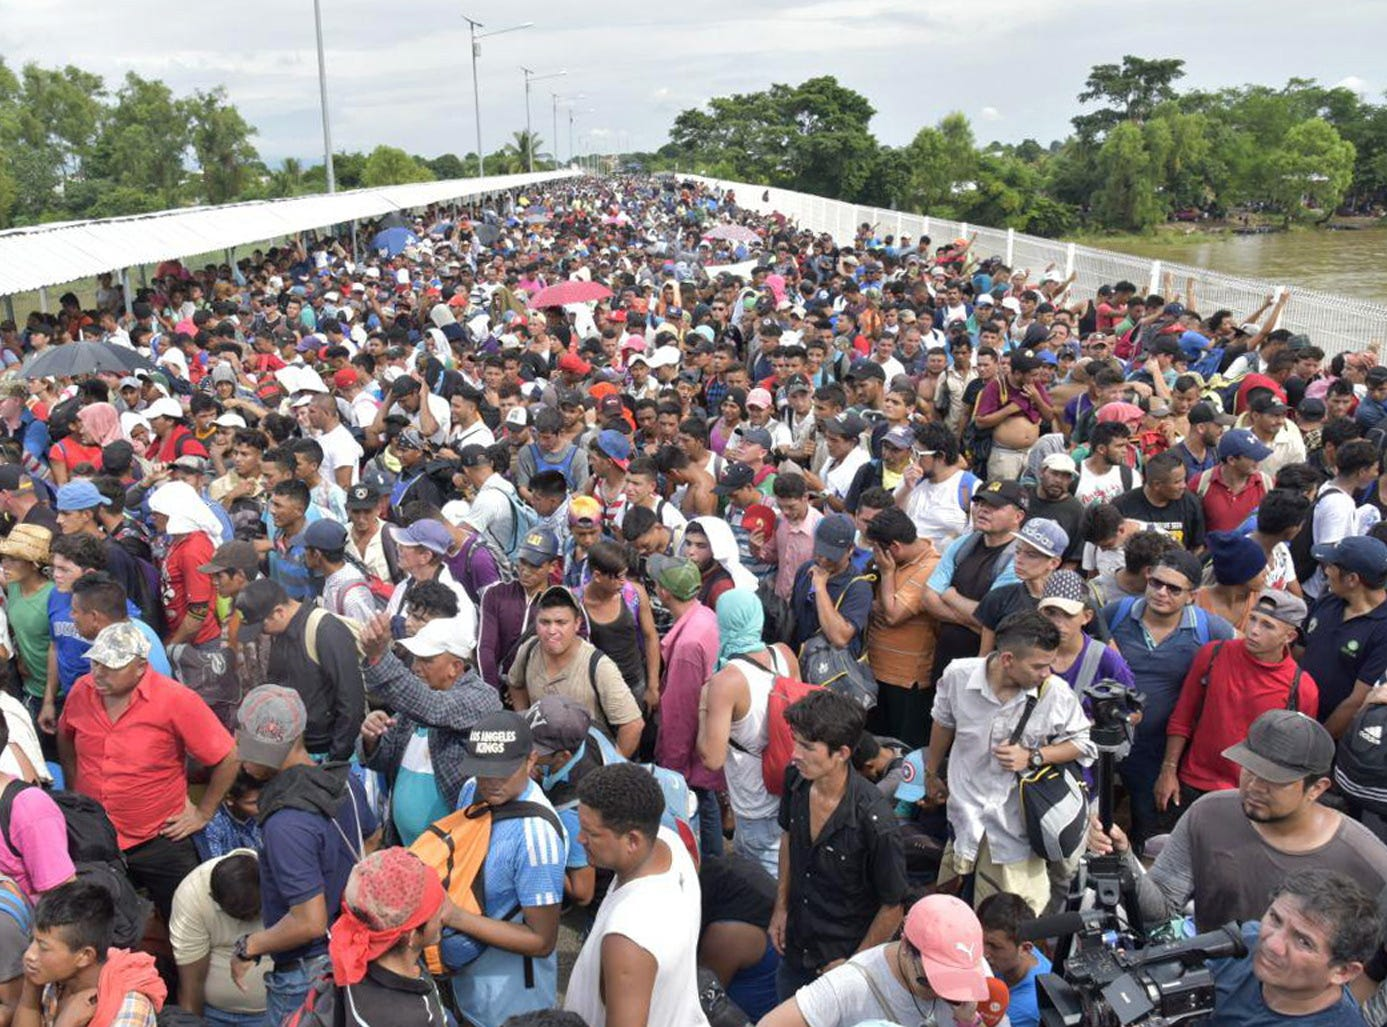 Thousands of Honduran migrants wait for access on the bridge that crosses the Suchiate River after crossing the fence on the border with Guatemala to enter in Ciudad Hidalgo, Mexico on Oct. 19, 2018.